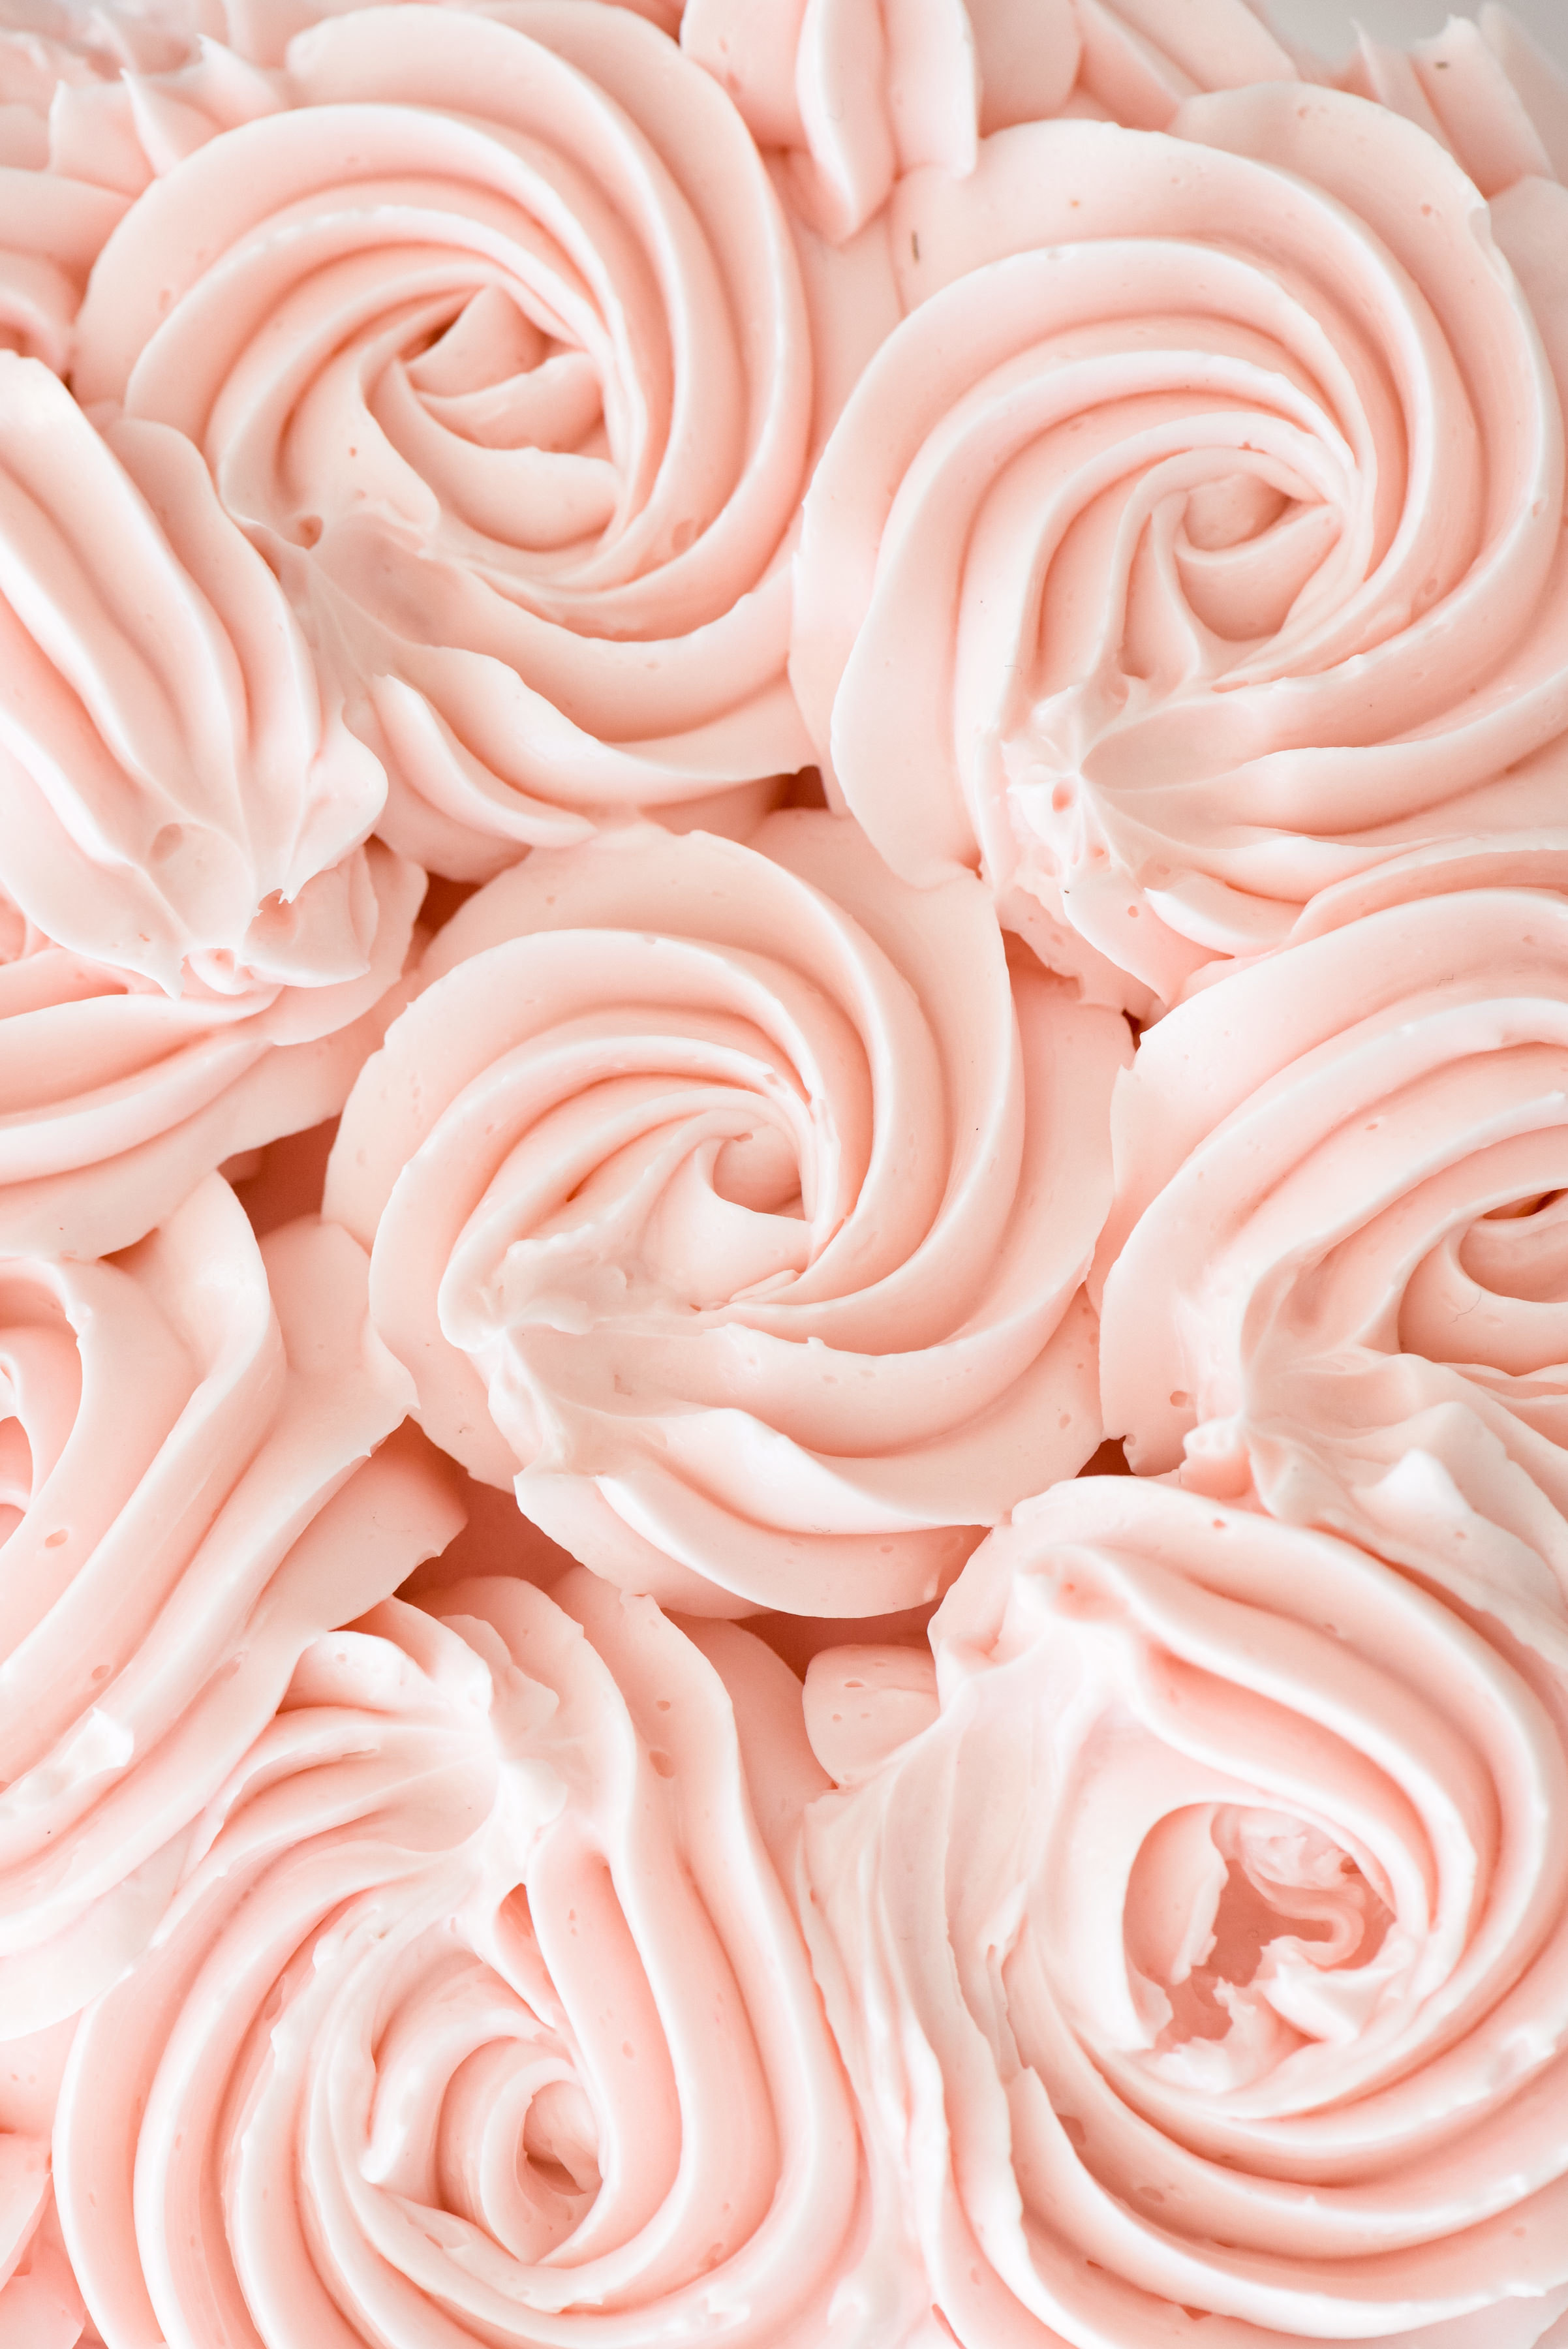 rosettes up close pink.jpg